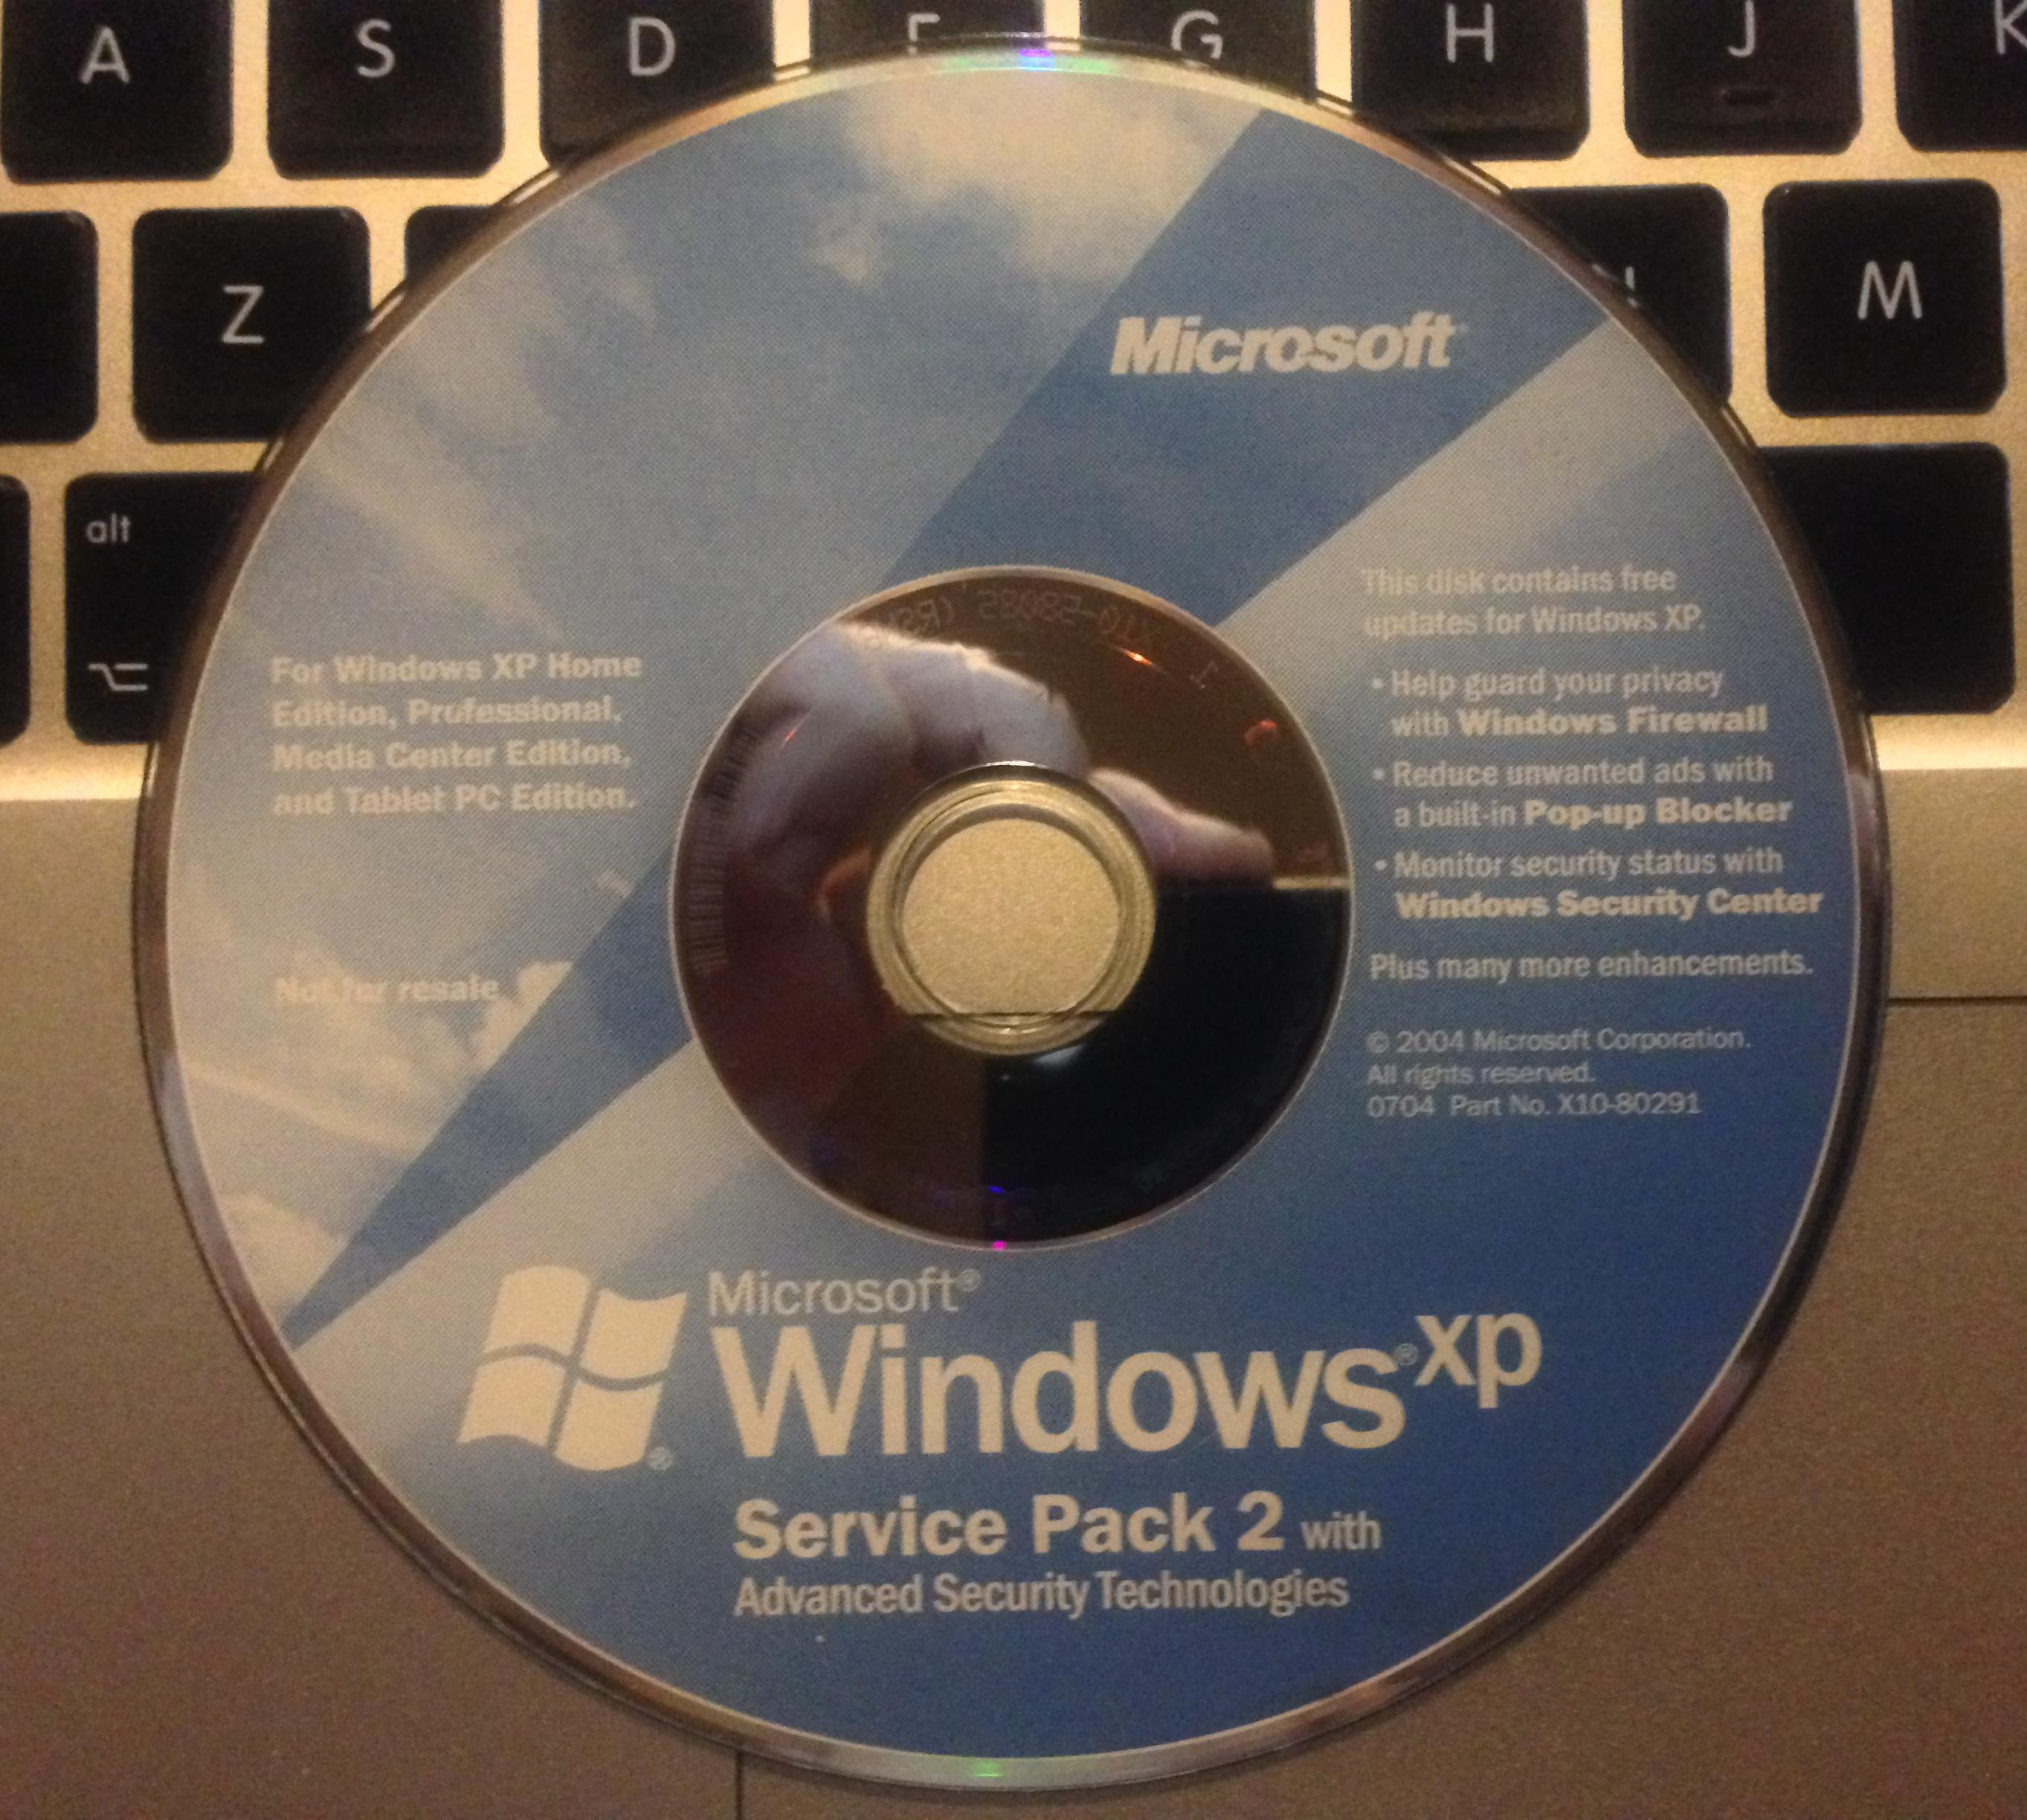 View topic - [OFFER] Windows XP Service Pack 2 CD [X10-80291